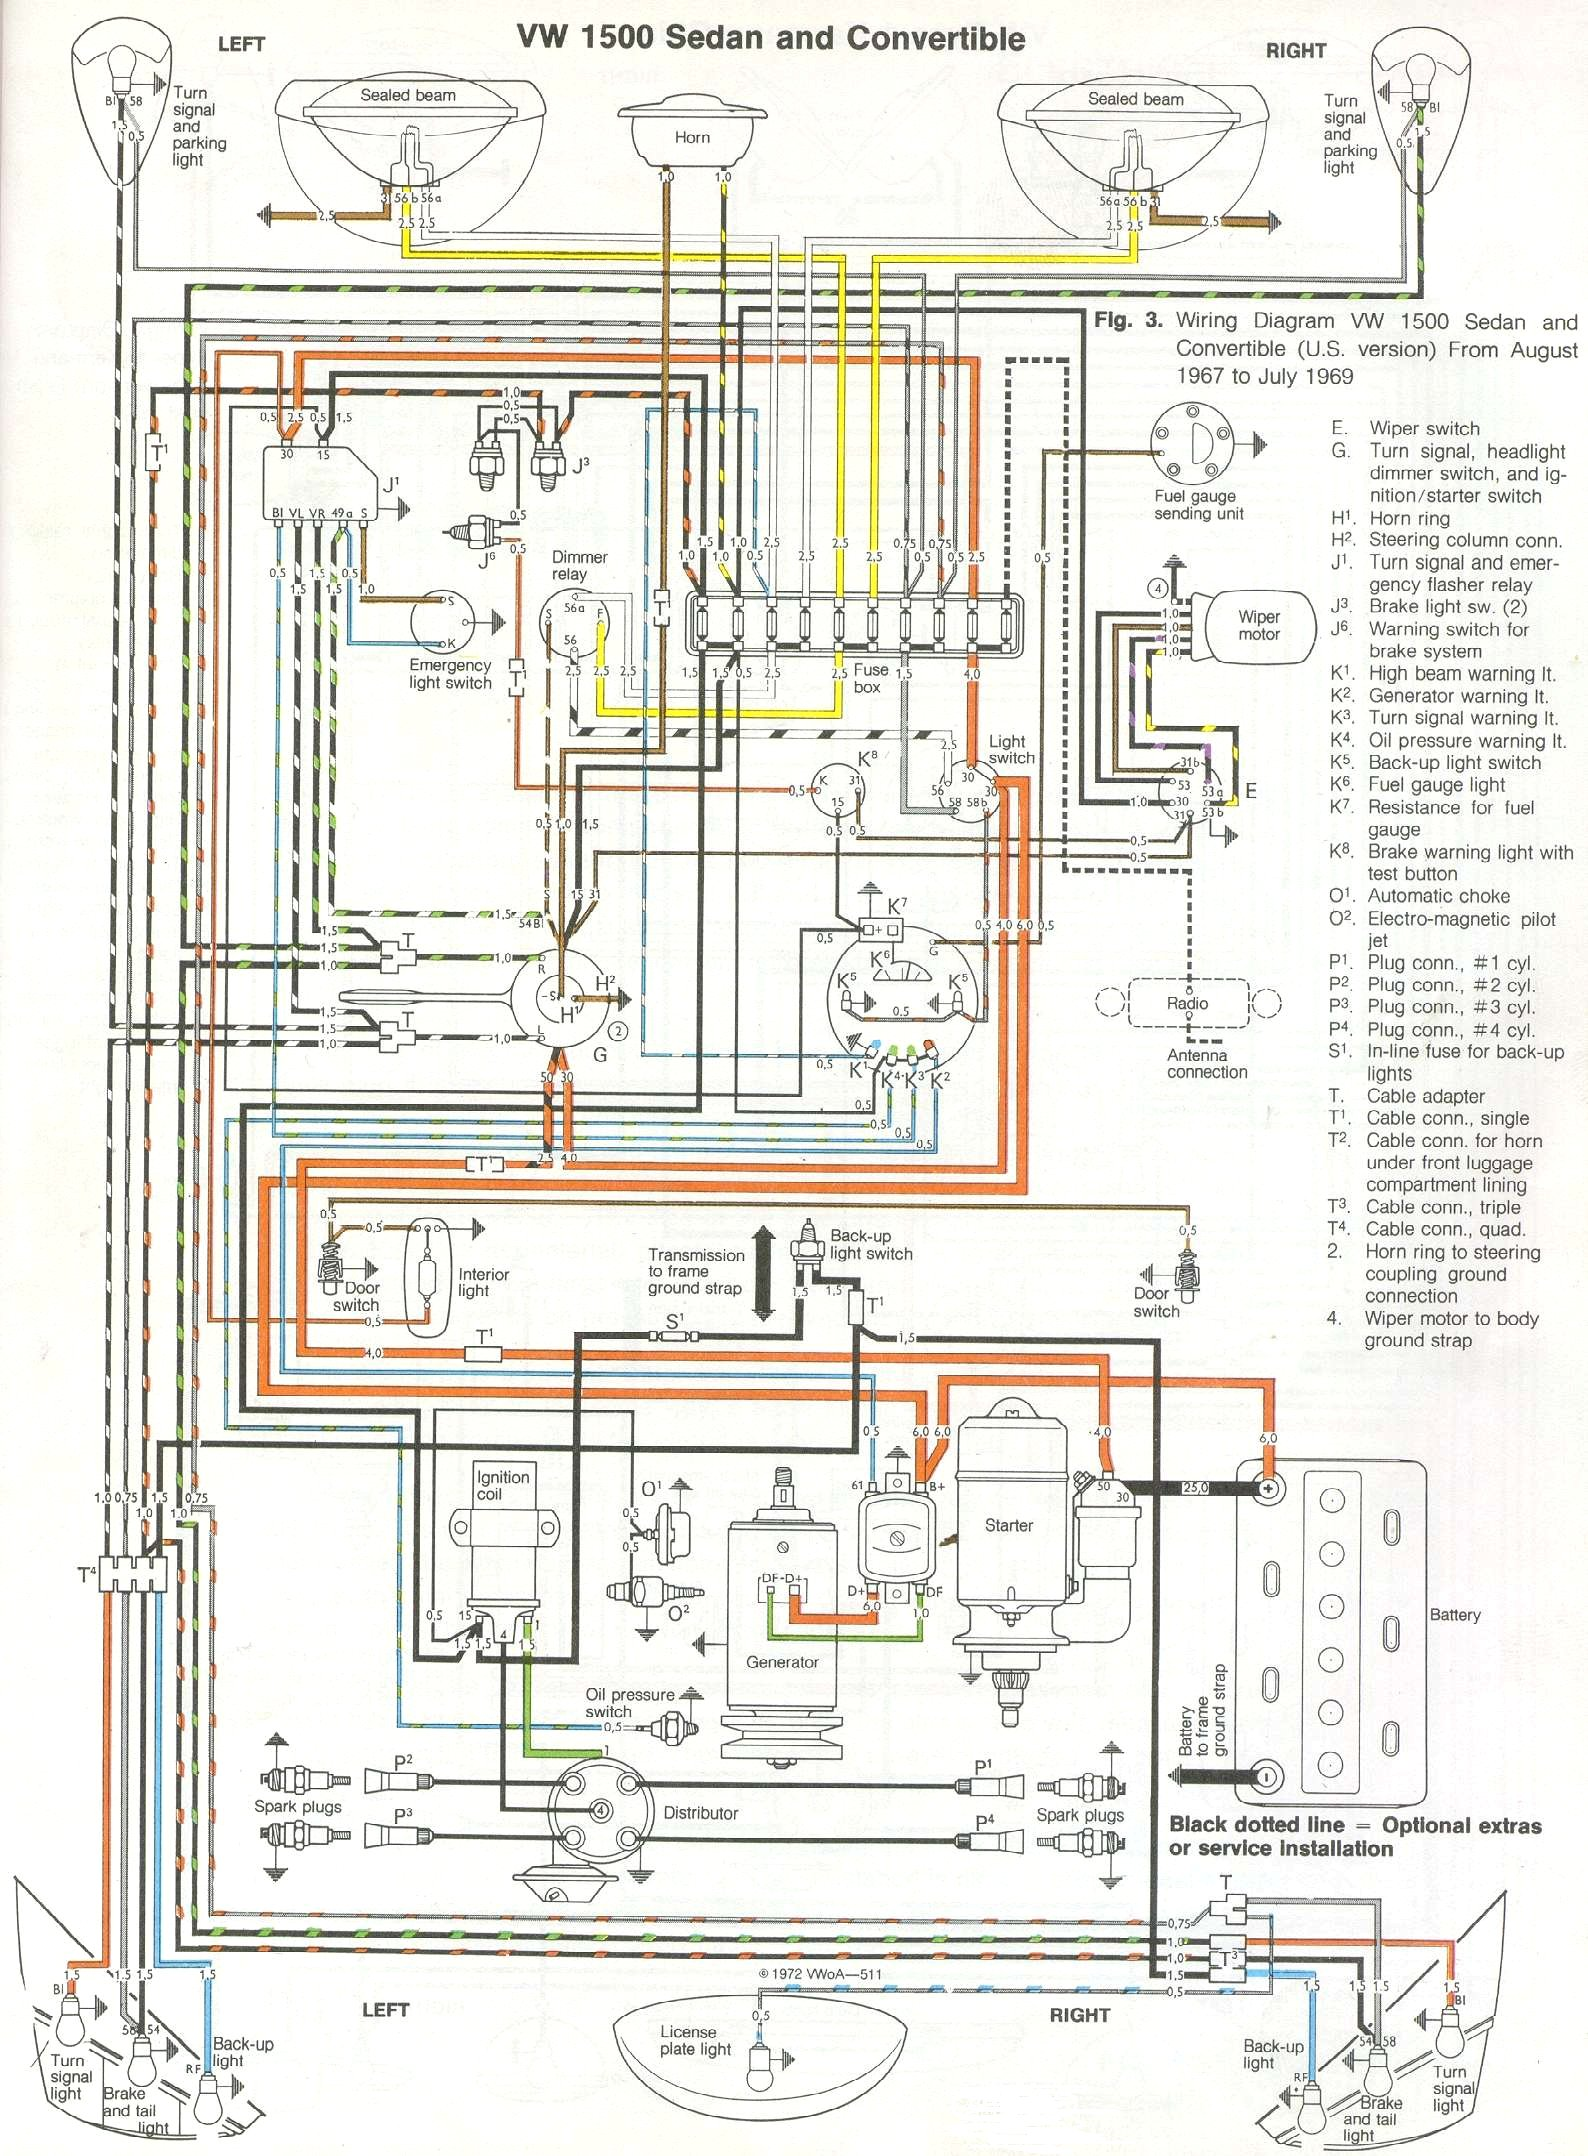 1968 vw wiring schematic wiring diagram data schema VW Beetle Generator Wiring Diagram 1968 vw wiring schematic wiring diagram database 1968 69 beetle wiring diagram (usa) thegoldenbug